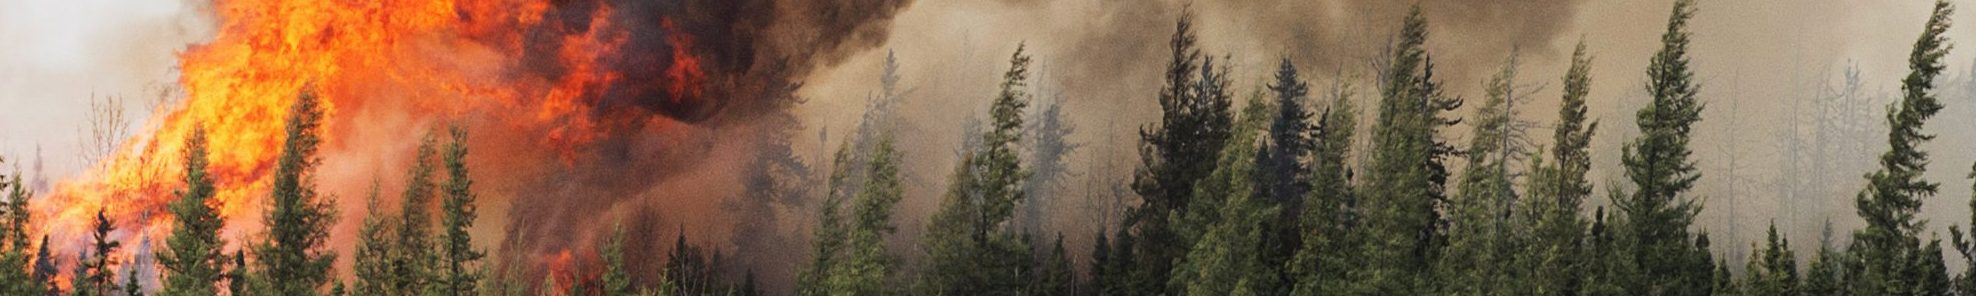 In the spring of 2016, aided by high temperatures and strong winds, forest fires quickly spread out of control in the Canadian province of Alberta. It would turn out to be one of the costliest natural catastrophes in Canadian history.